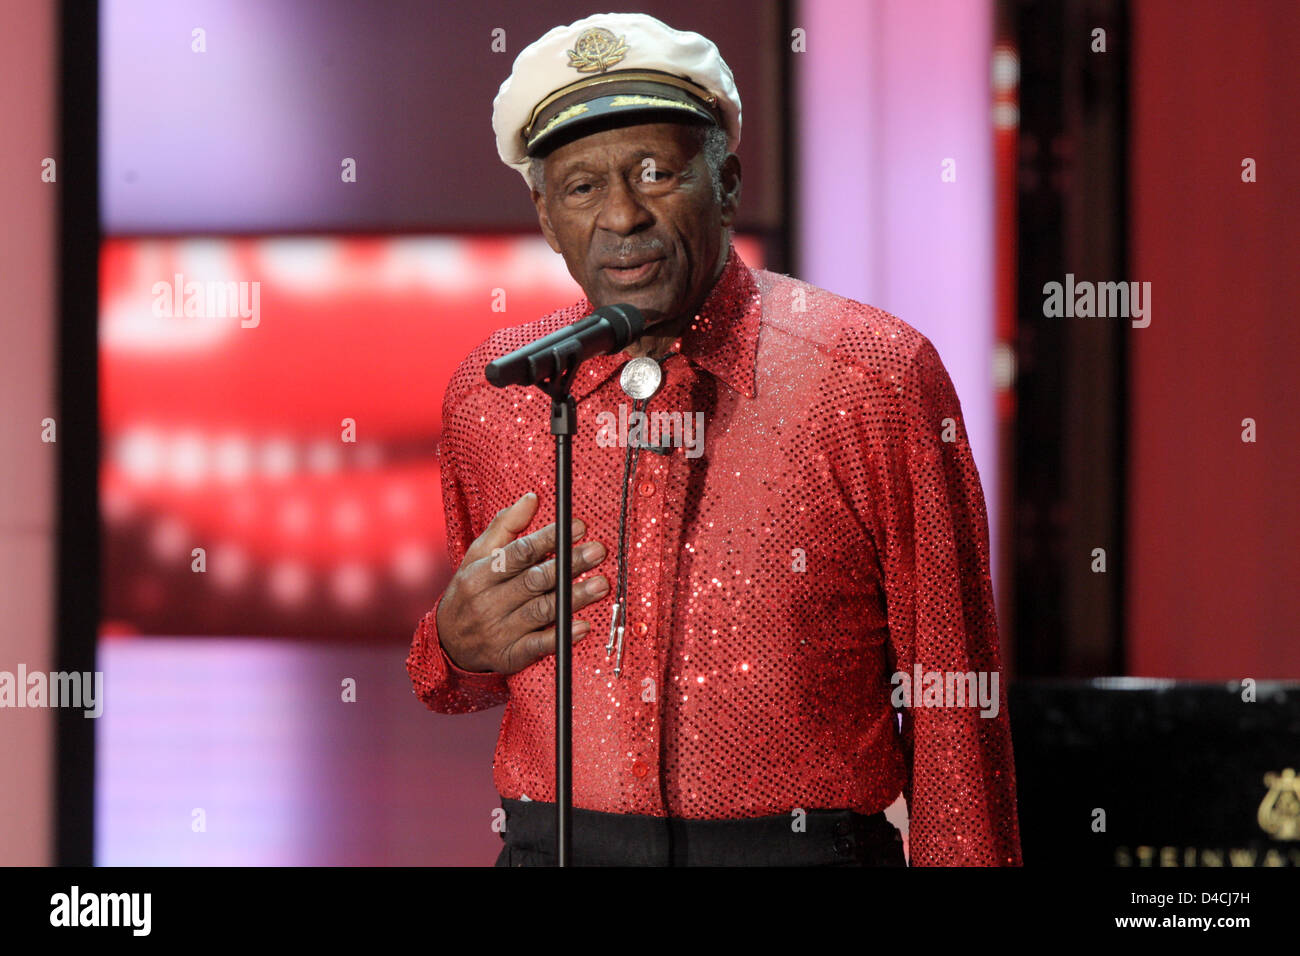 US music legend Chuck Berry on stage at the 43rd 'Goldene Kamera' Awards in Berlin, Germany, 06 February - Stock Image